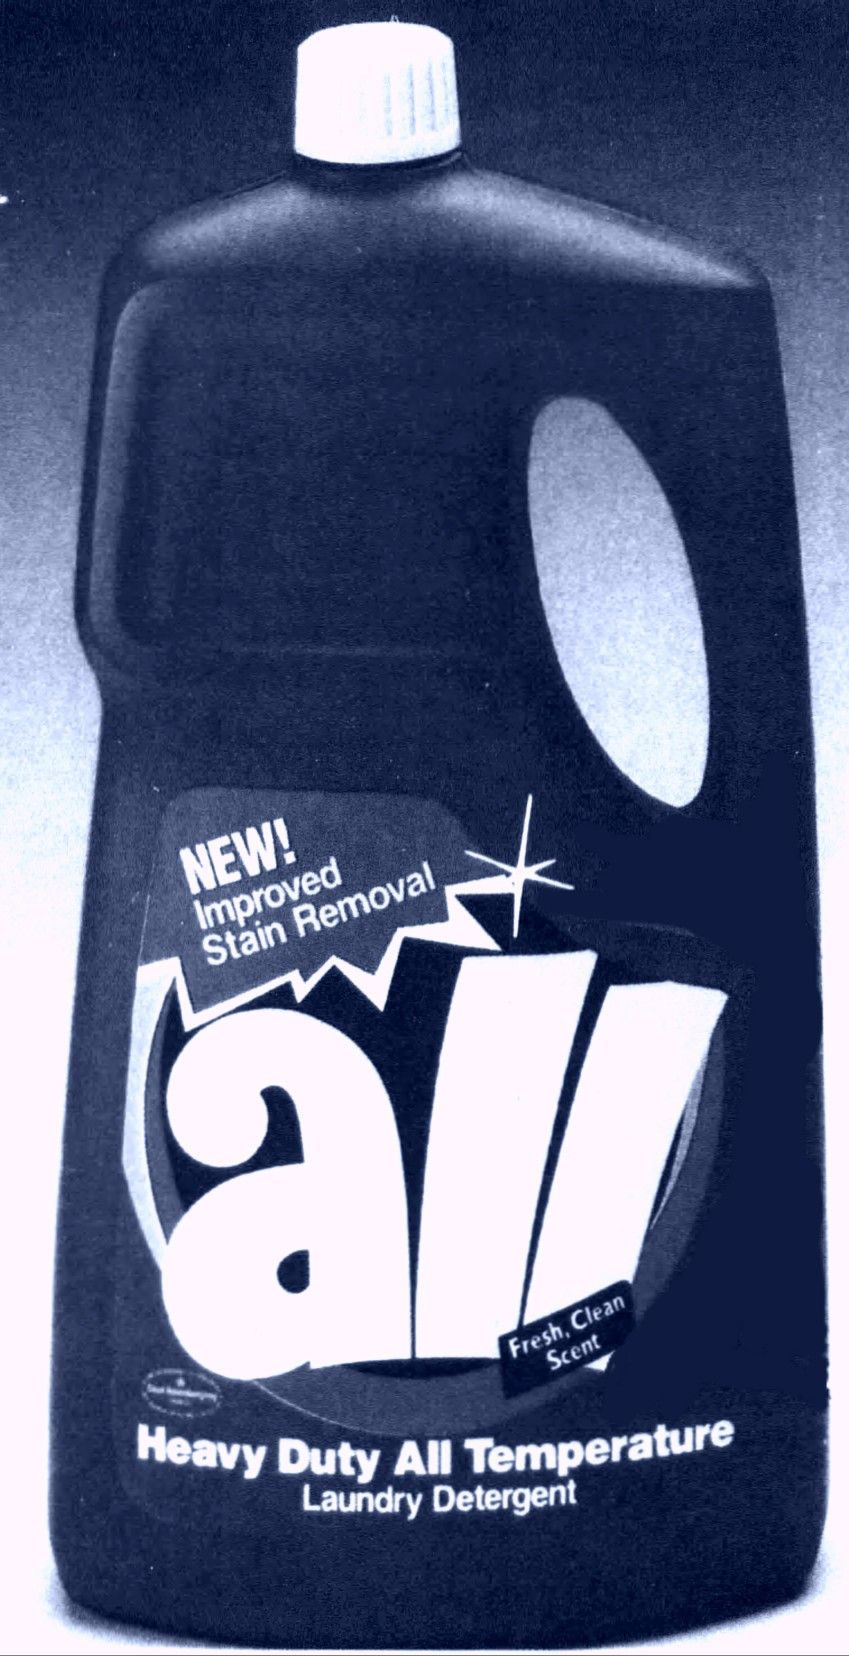 Pin By Theo Cole On More Retro Ads Laundry Detergent Vintage